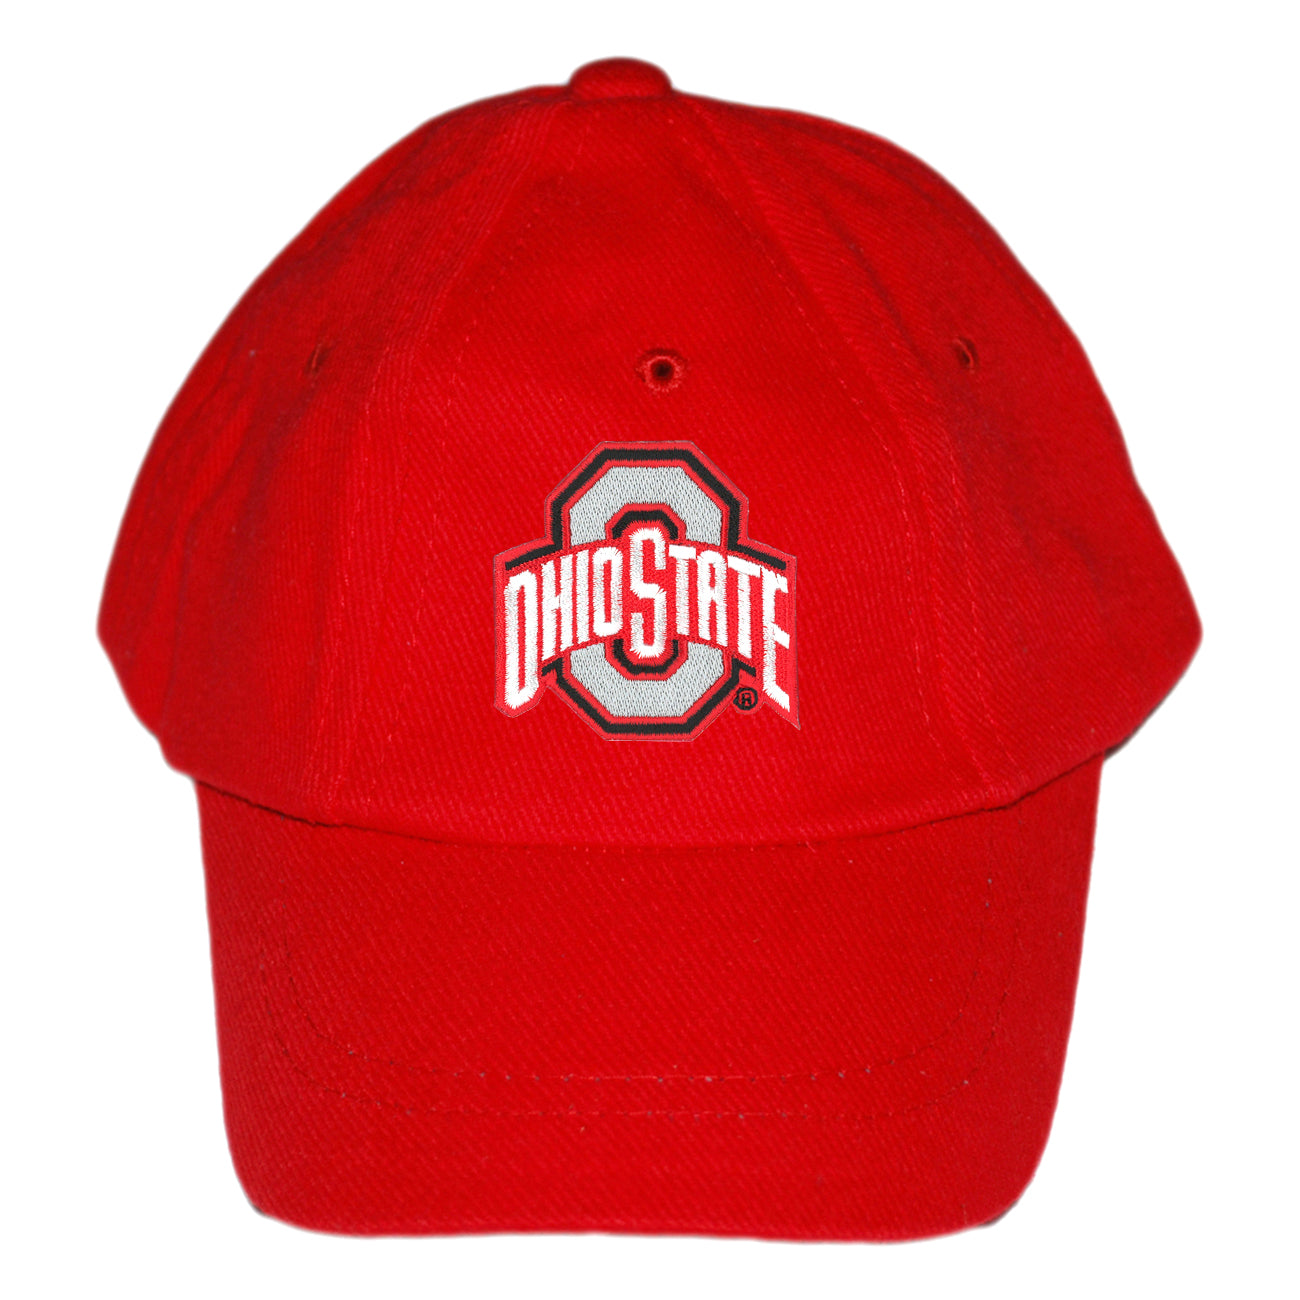 Creative Knitwear Red Baseball Cap OSU Ohio State University College  Football Hat Baby Newborn Infant Toddler 72d8bf8f5fe